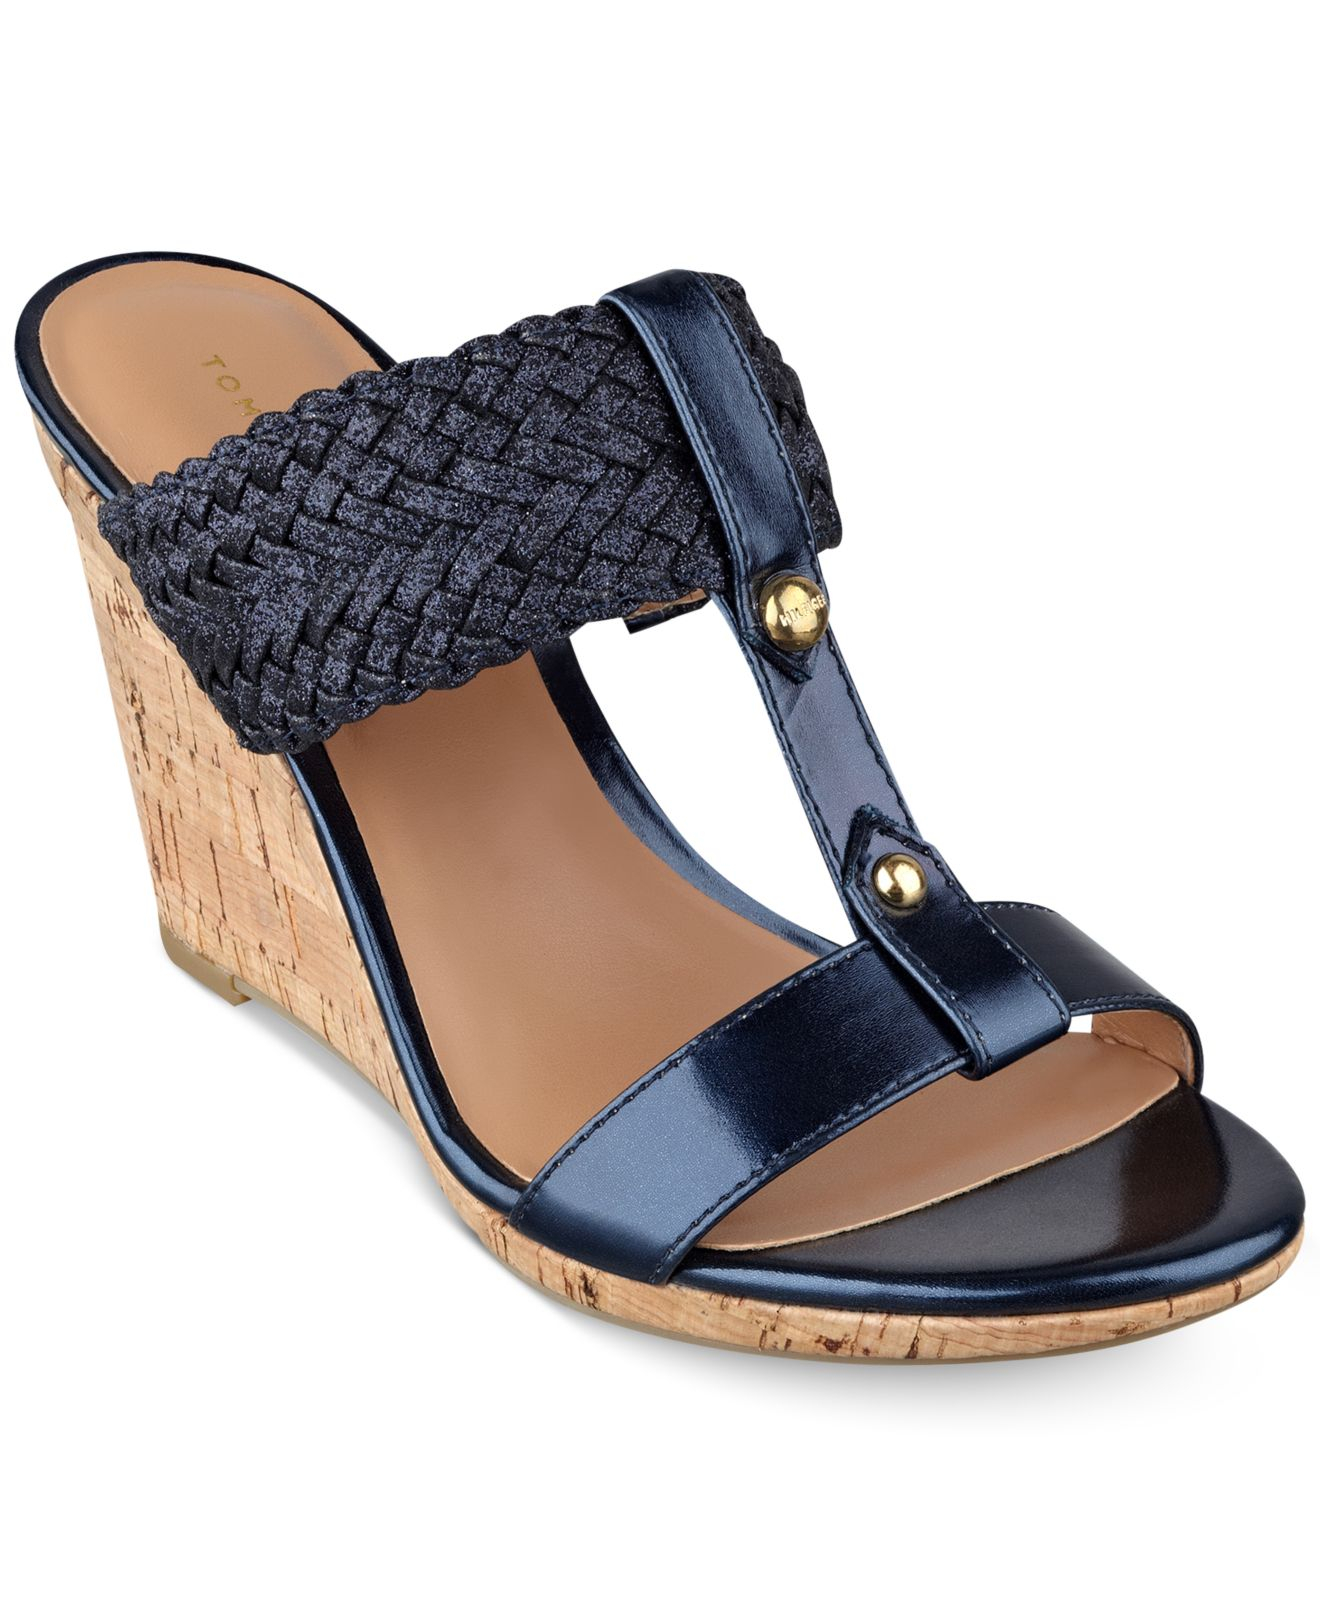 strappy sandals - Blue Tommy Hilfiger Low Shipping Fee Cheap Price Clearance Store m3AiSKAX70